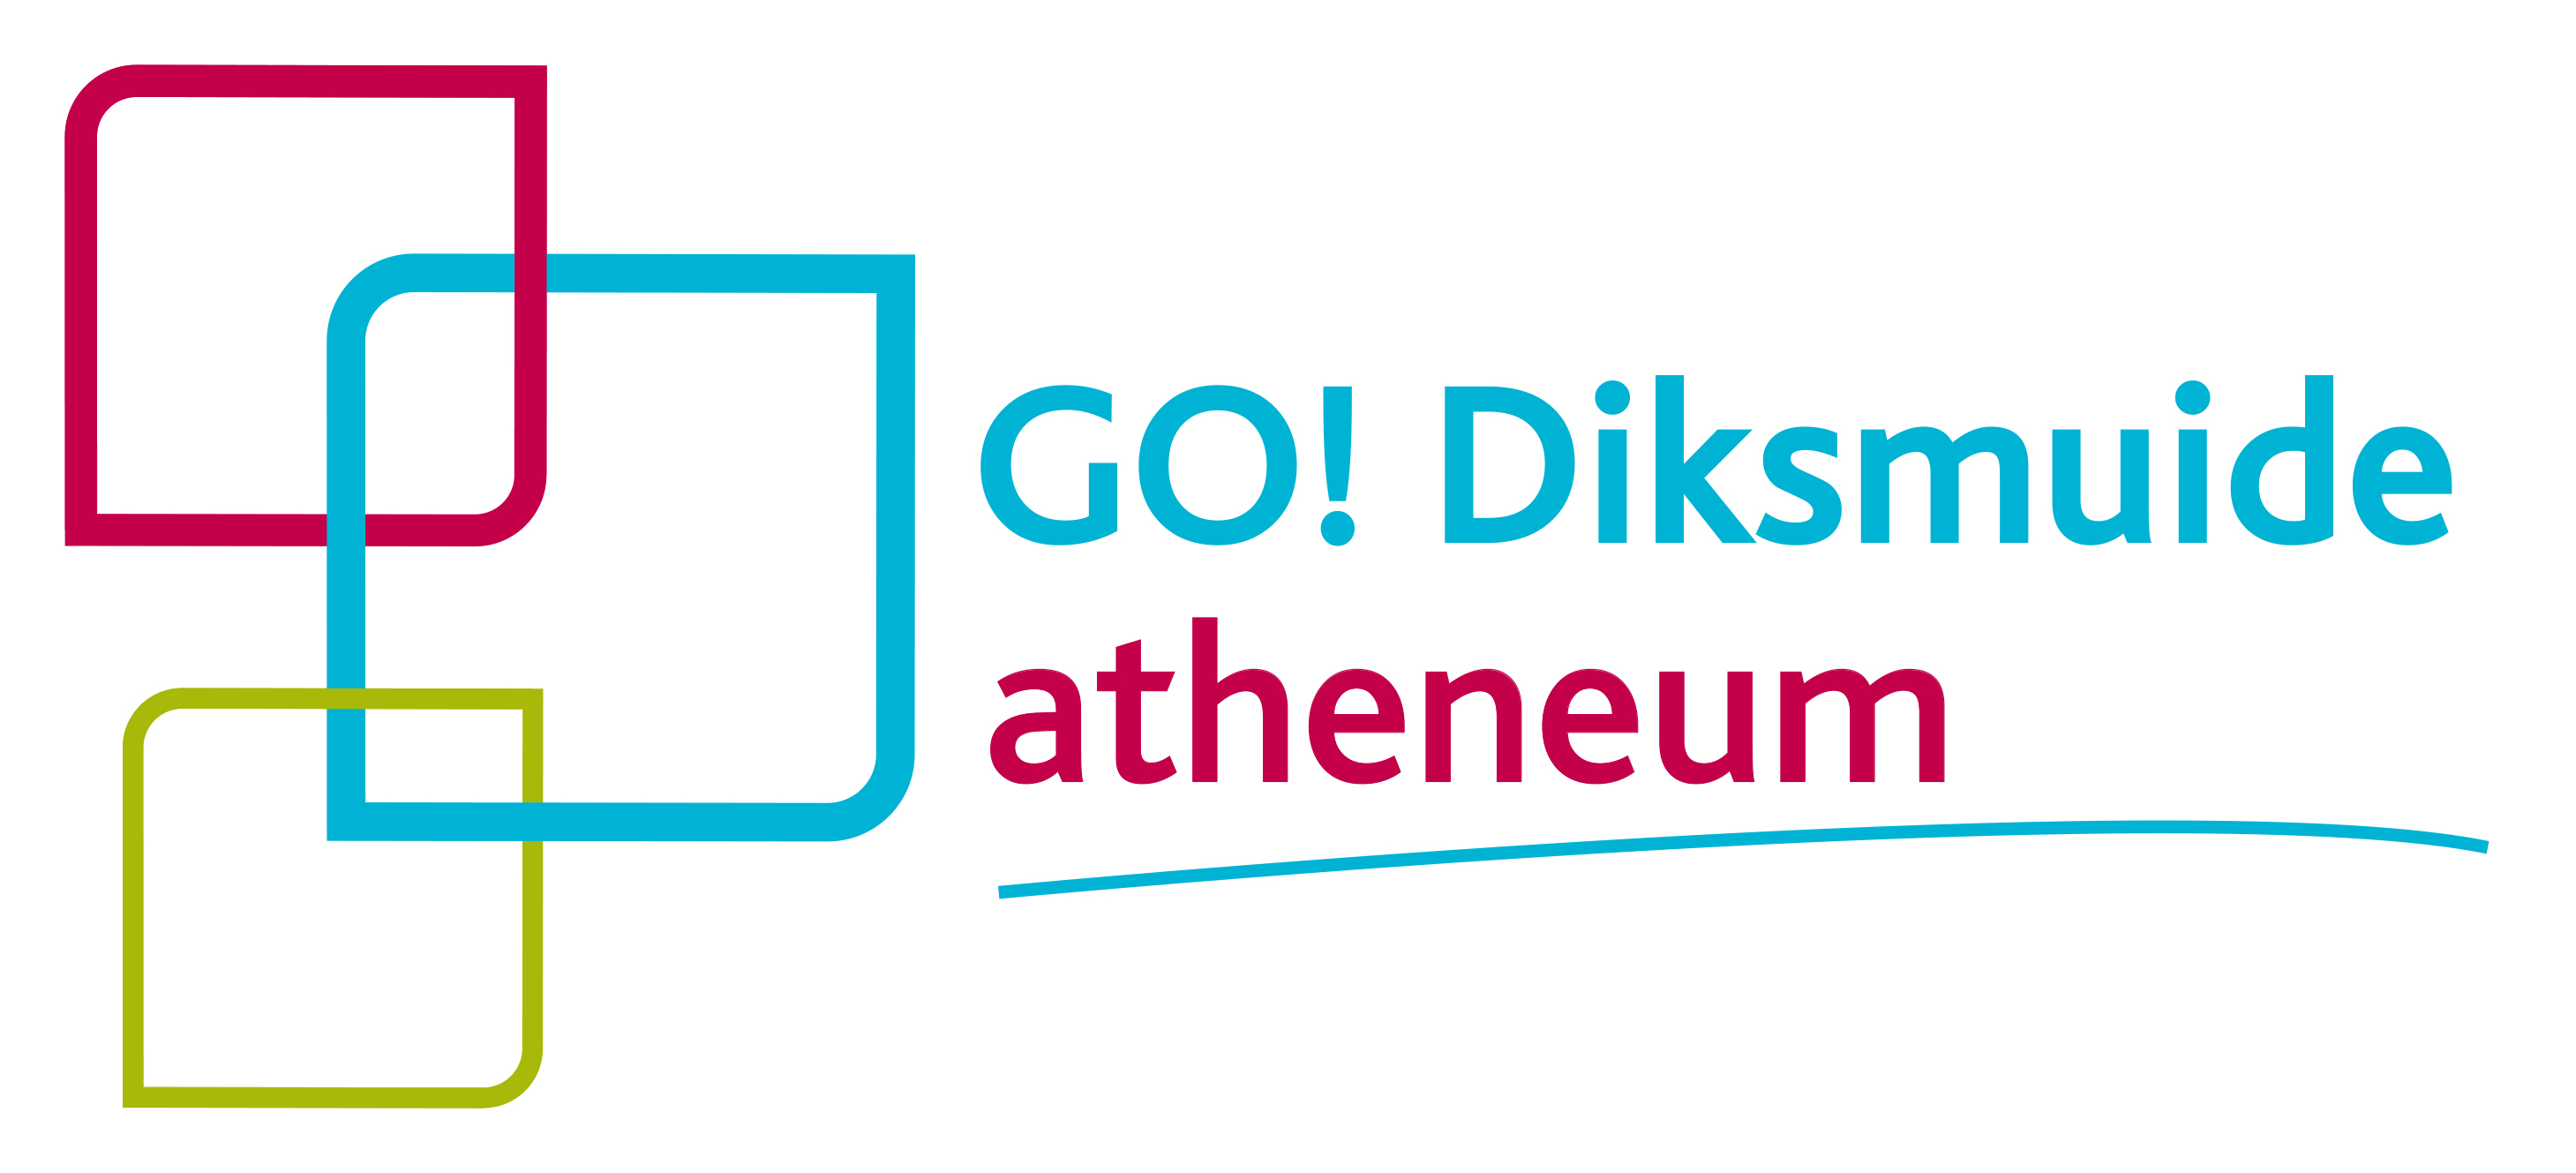 https://atheneum.go-diksmuide.be/nl